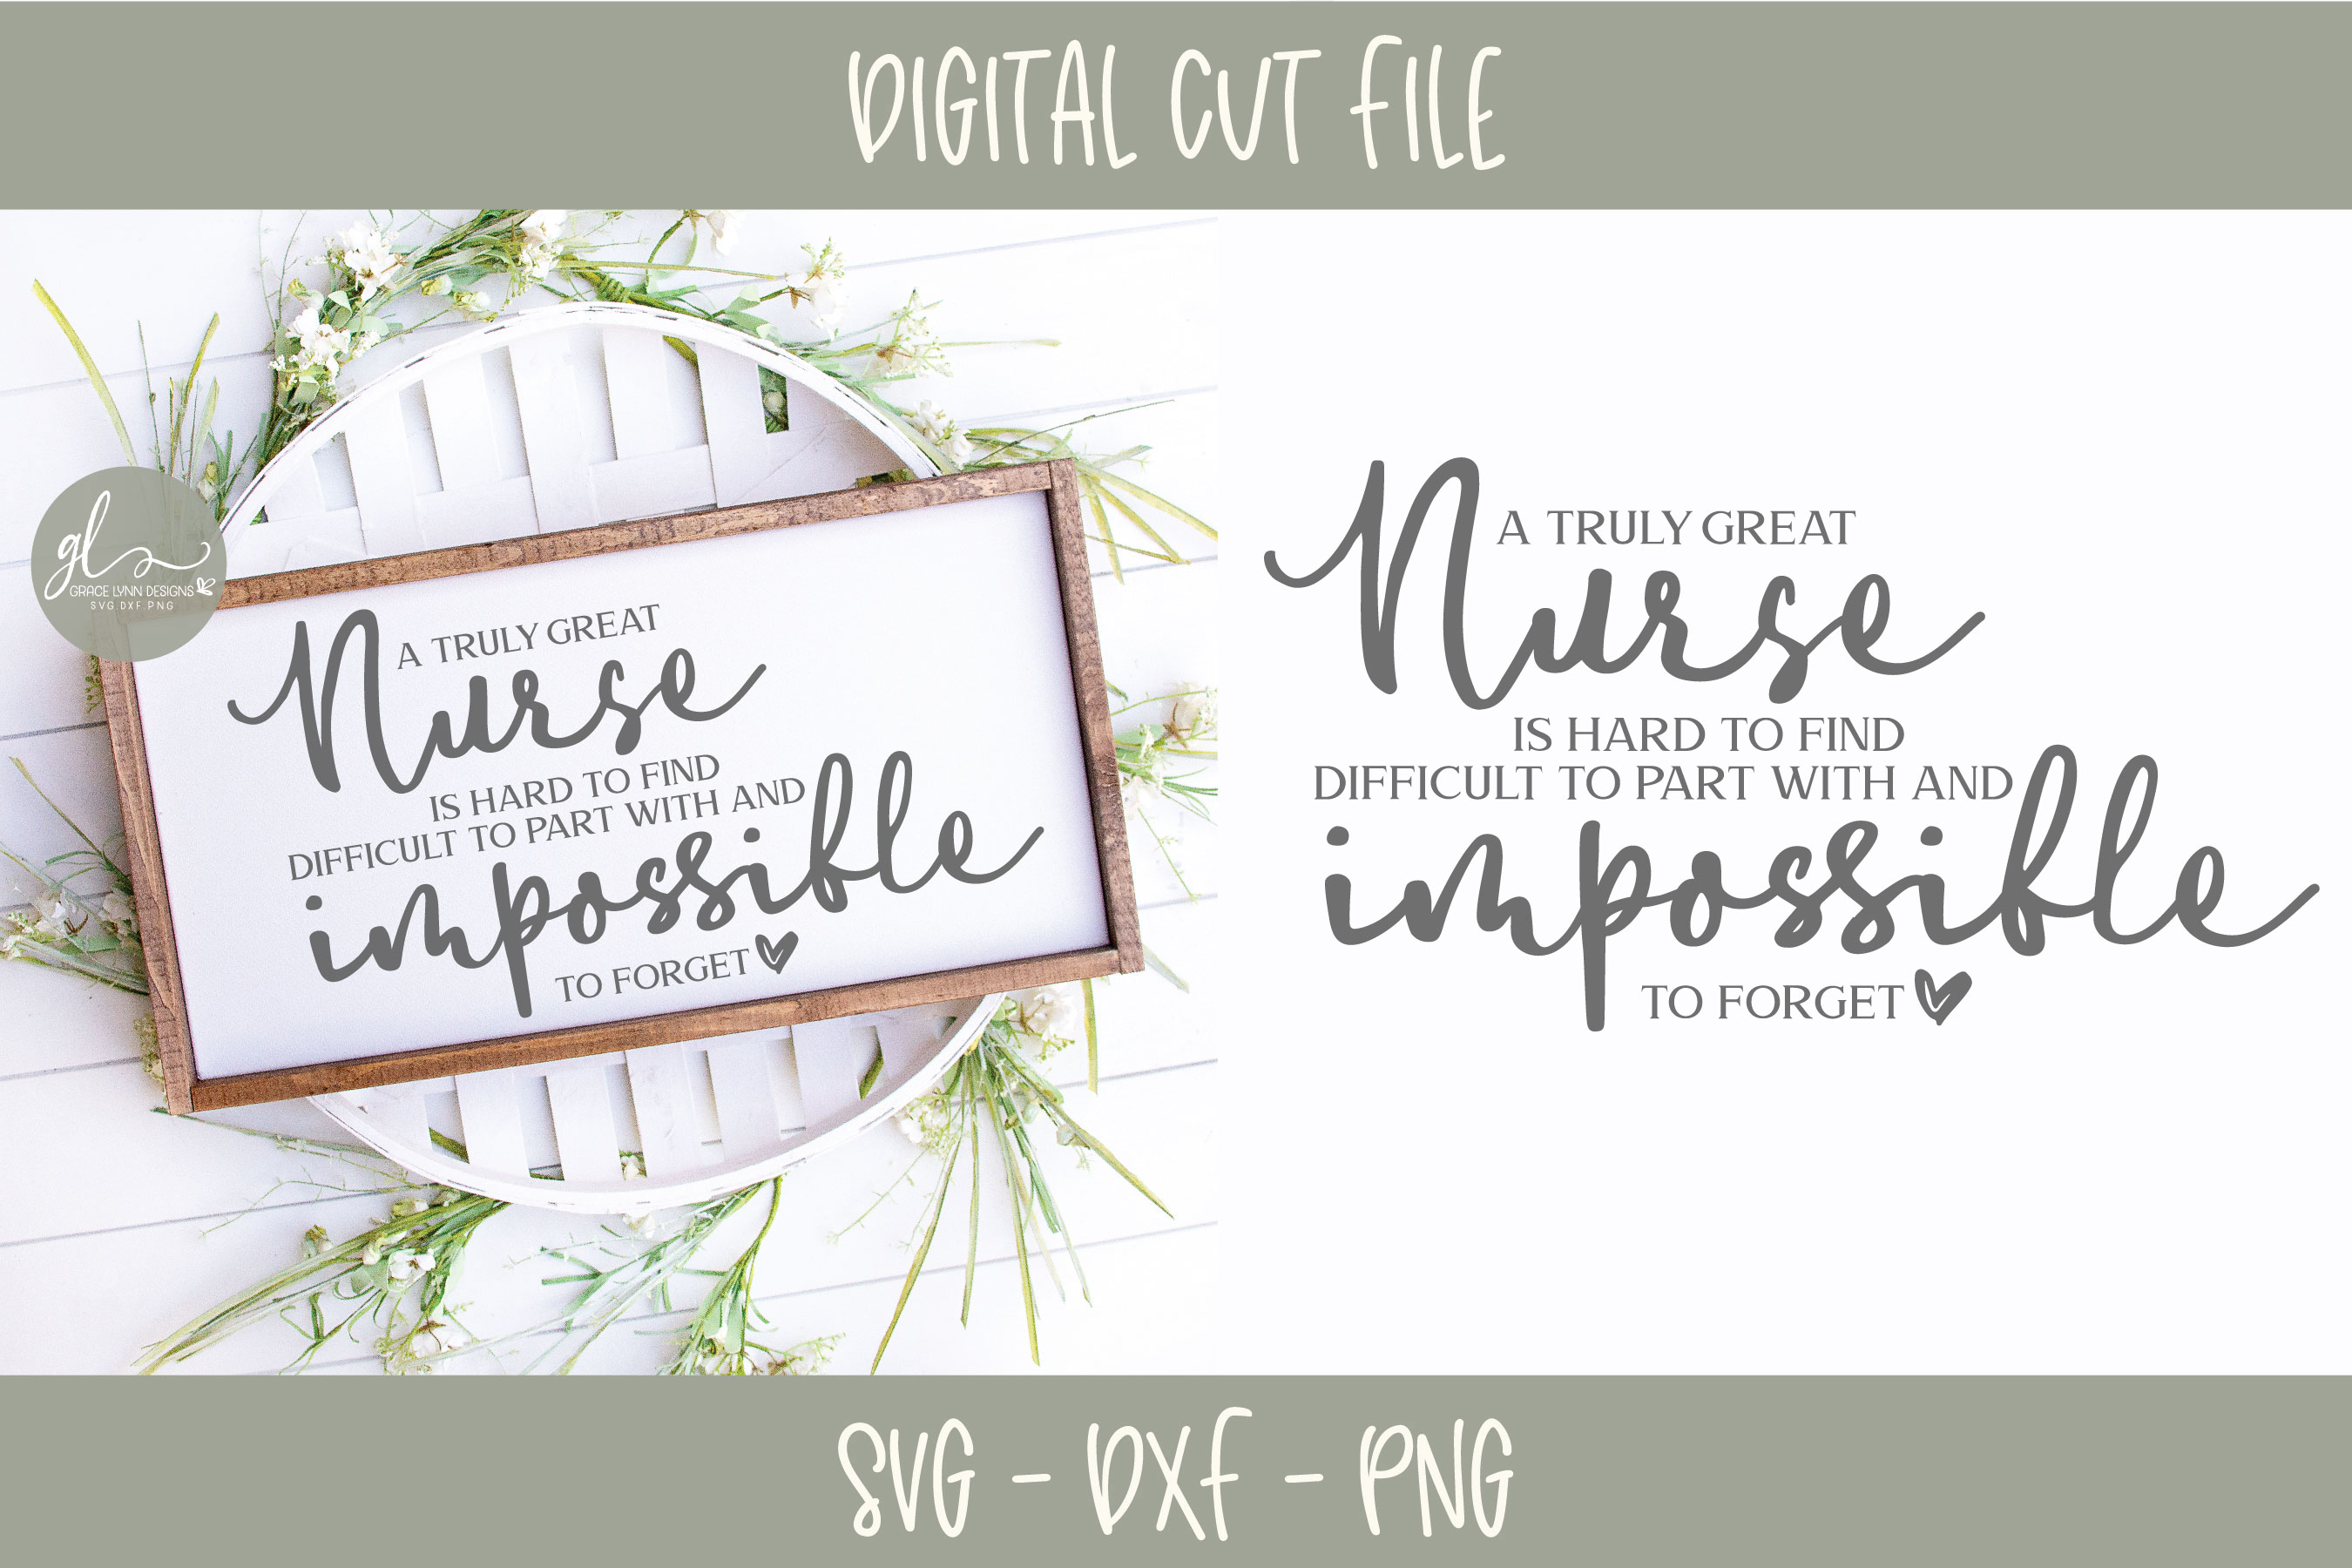 A Truly Great Nurse Is Hard To Find - SVG Cut File example image 1